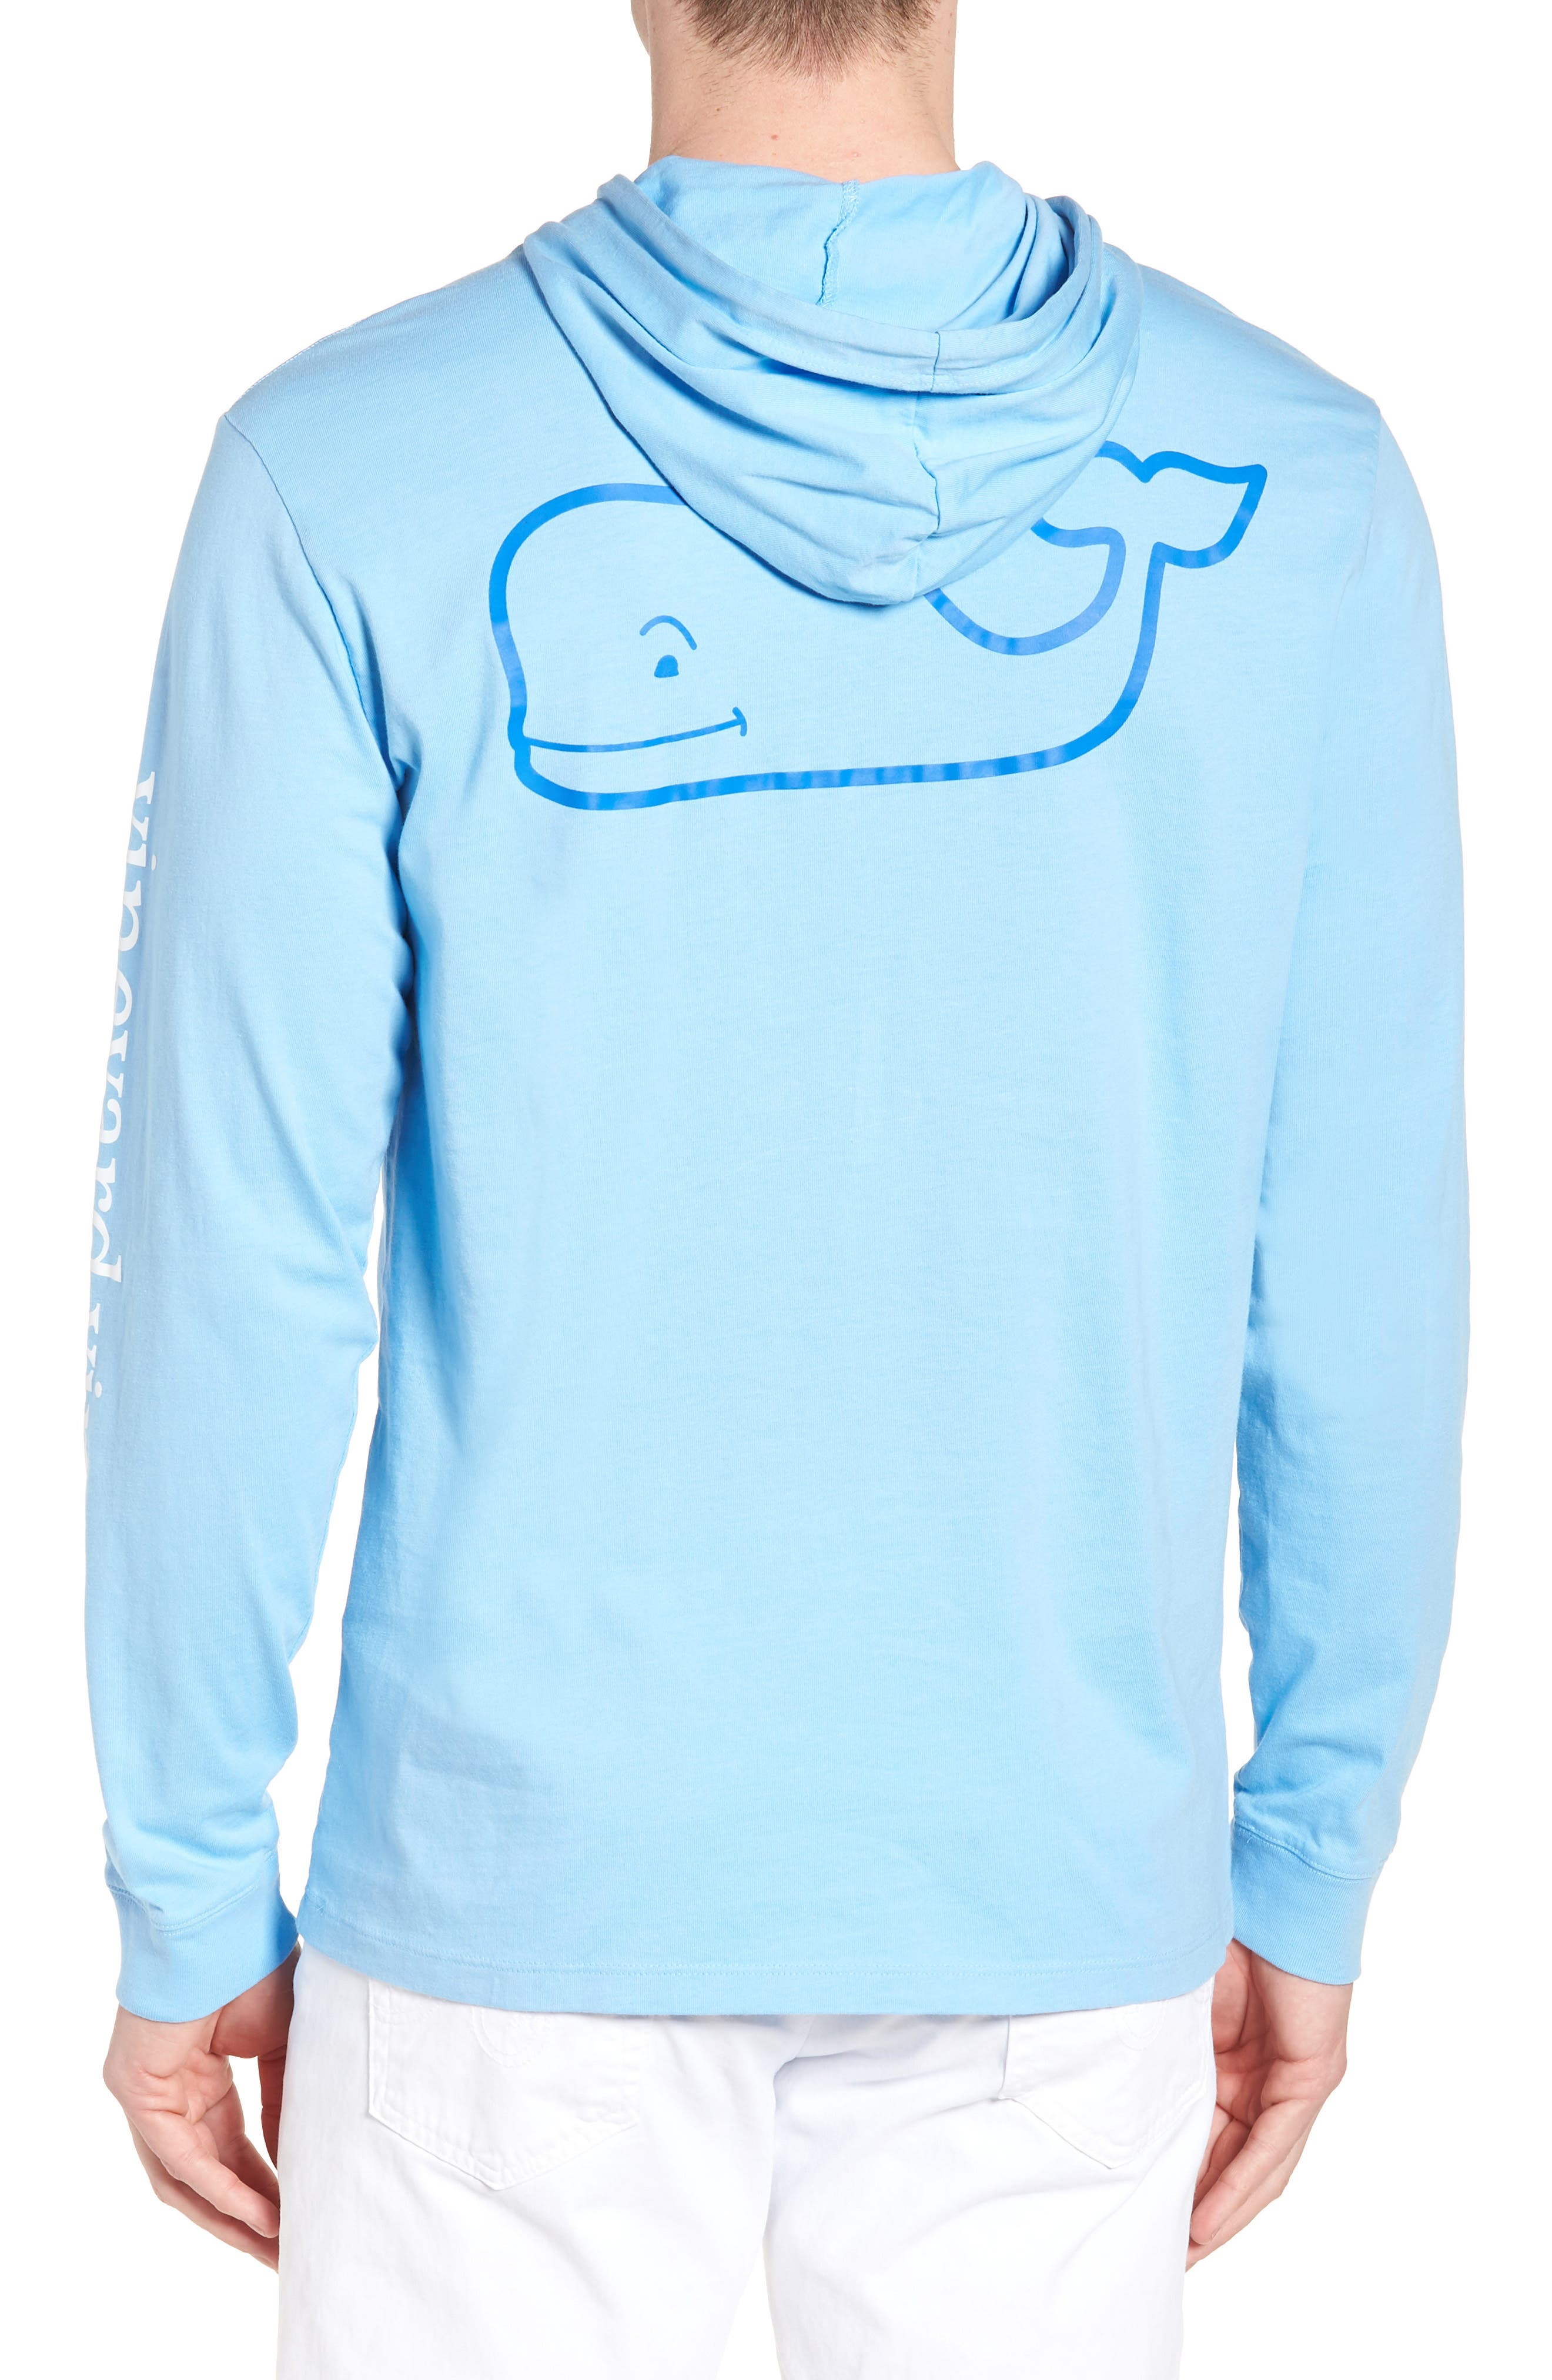 Whale Graphic Hooded T-Shirt,                             Alternate thumbnail 2, color,                             Ocean Breeze